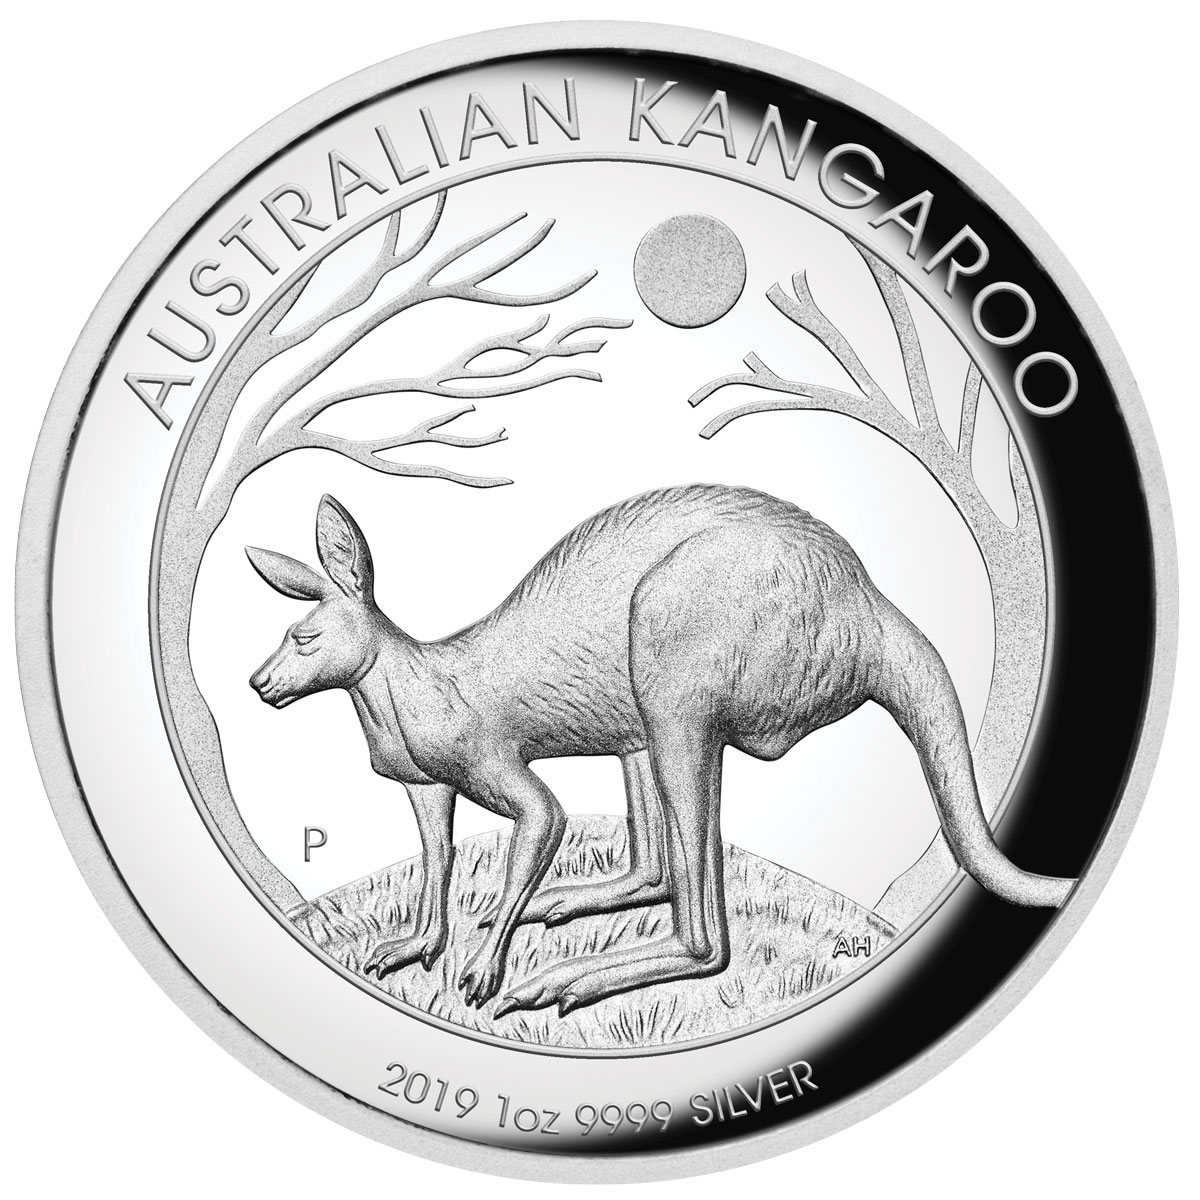 2019-P Australia 1 oz High Relief Silver Kangaroo Proof $1 Coin GEM Proof OGP